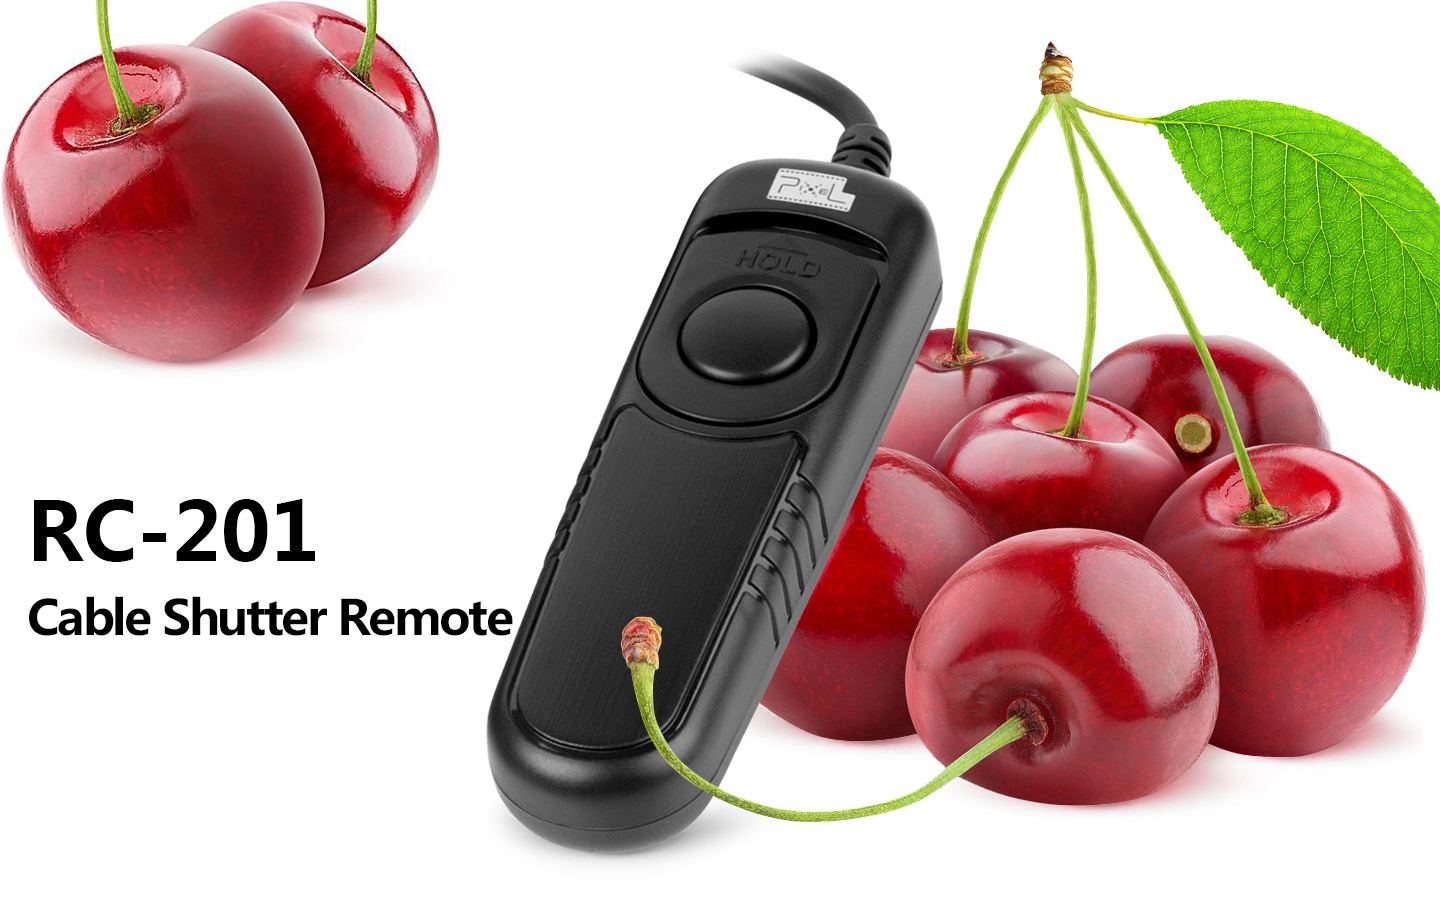 RC-201 Cable Shutter Remote